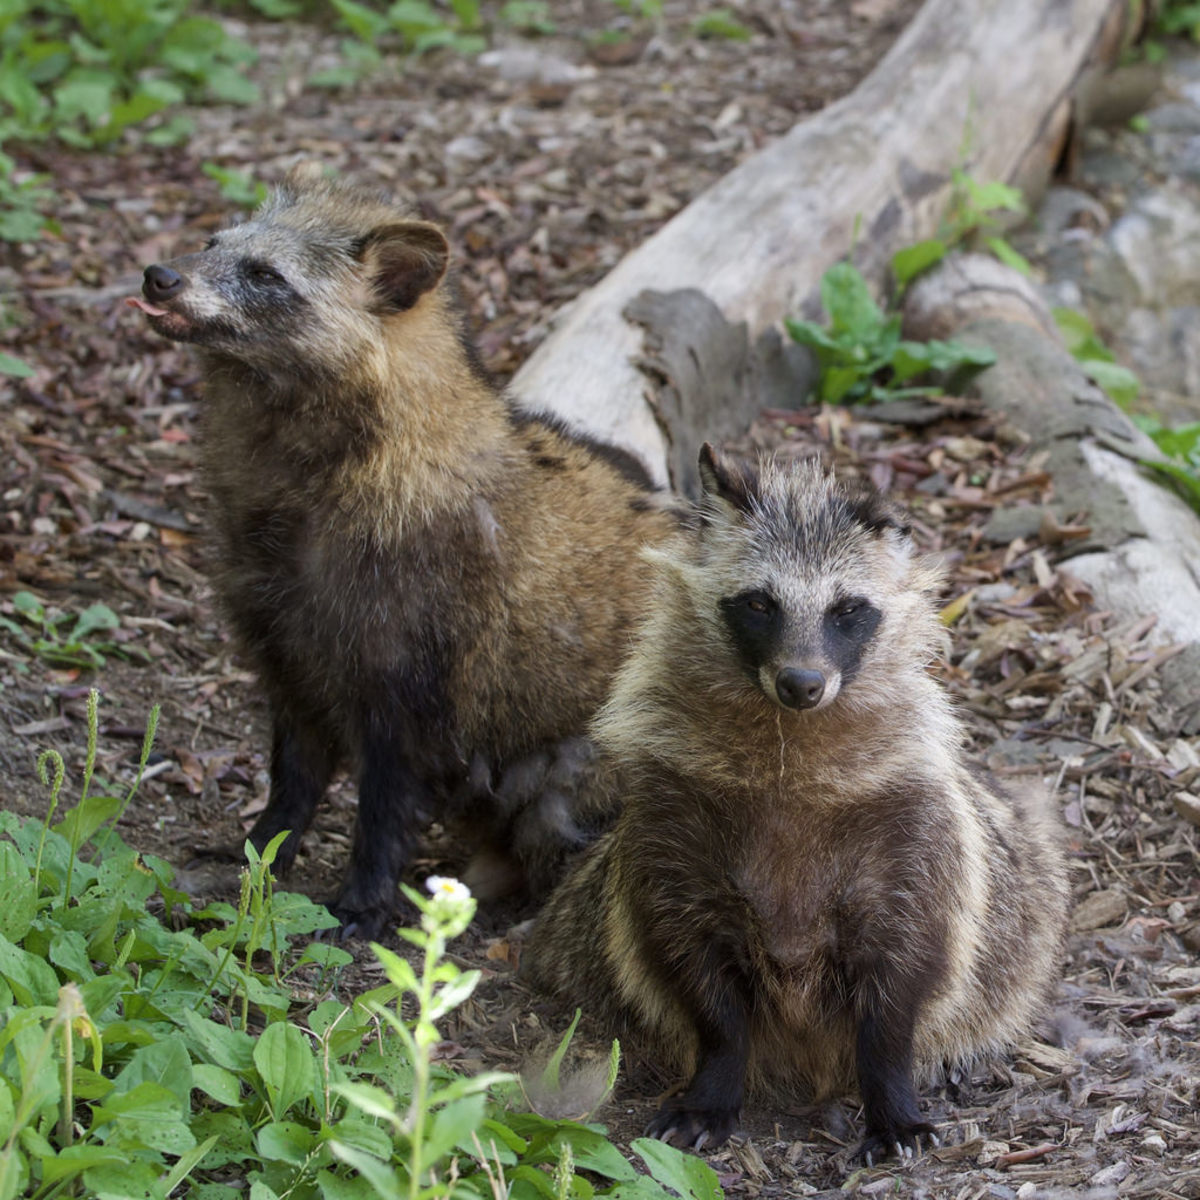 Raccoon dogs are highly adaptable and many parts of Europe and Russia mirror their home range in climate and food availability.